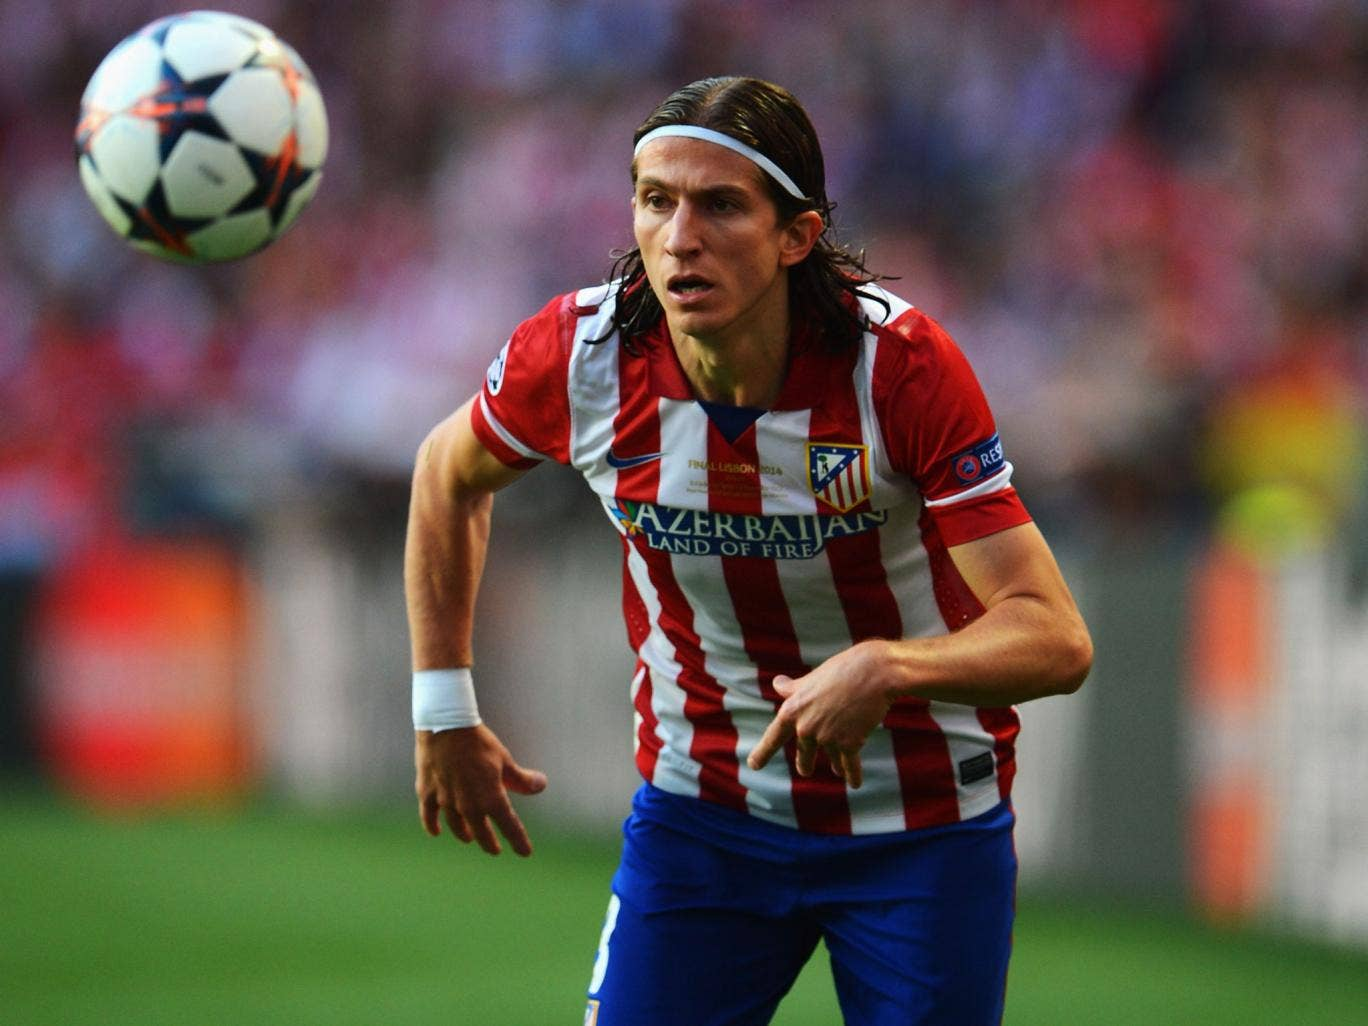 Filipe Luis in action for Atletico Madrid during last weekend's Champions League final defeat by Real Madrid in Lisbon